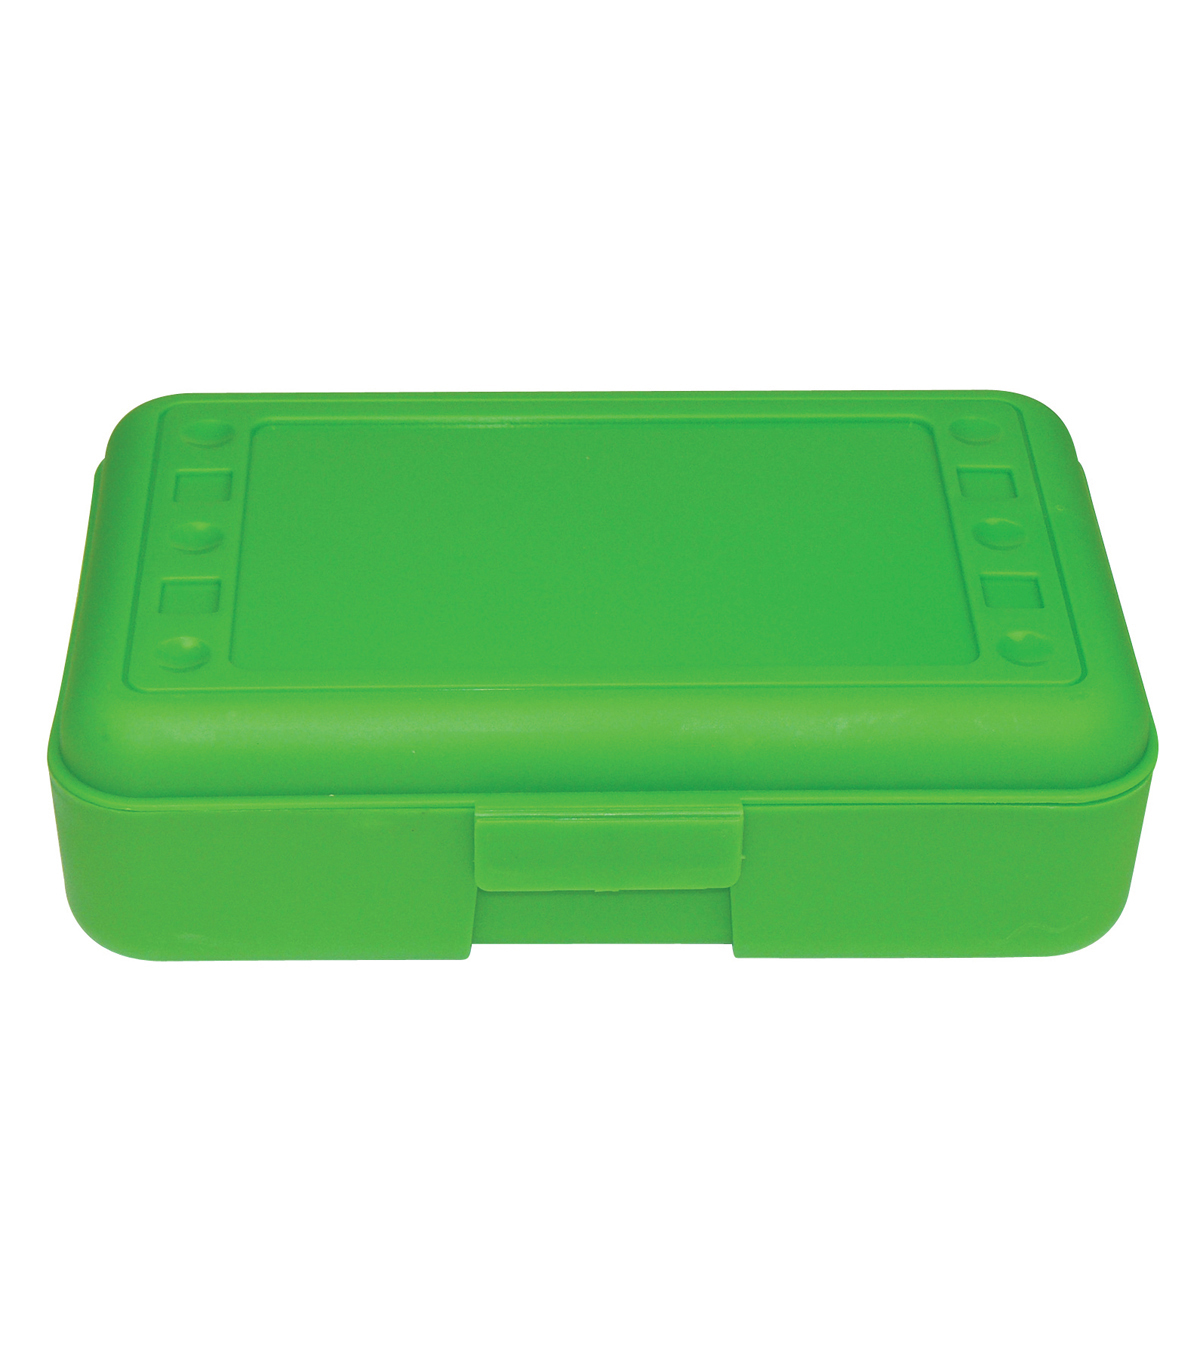 Romanoff Products Pencil Box, Pack of 12, Lime Opaque